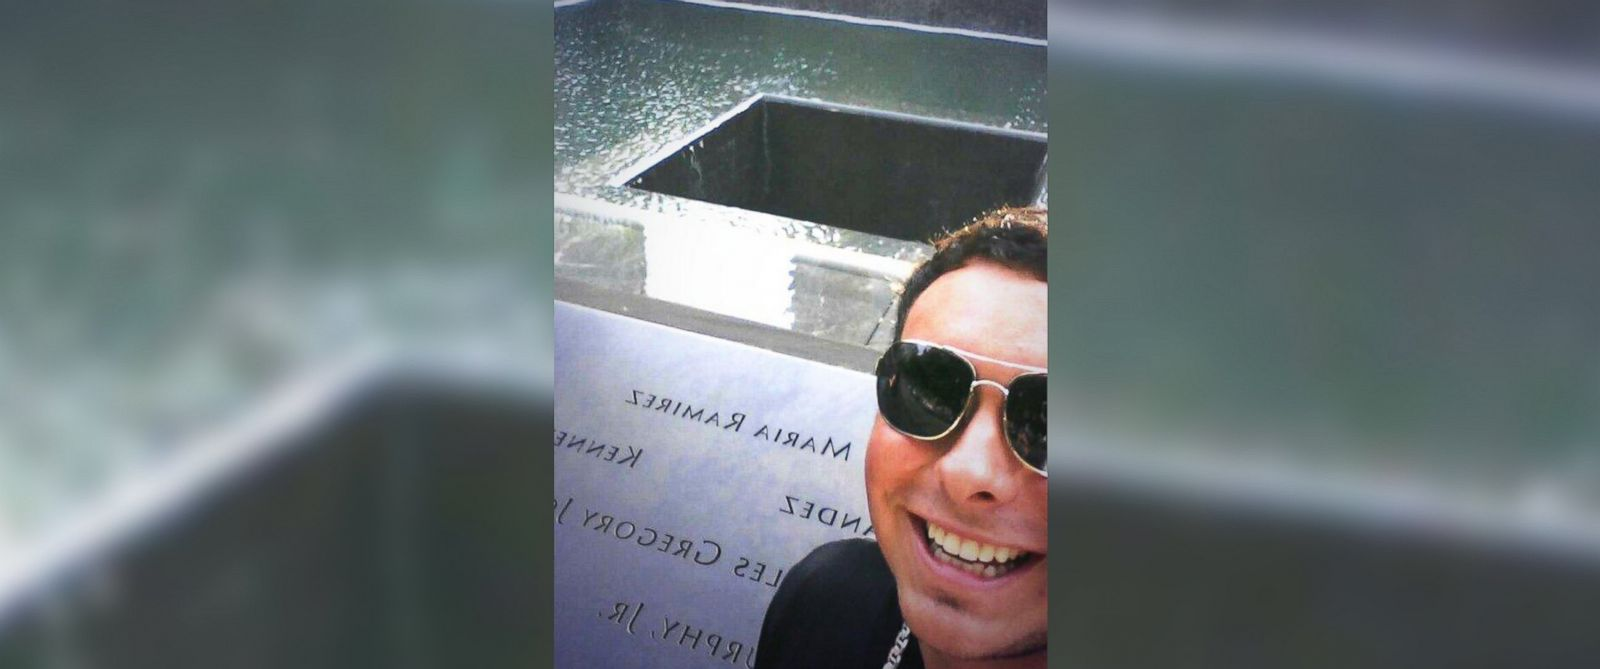 """PHOTO: Chris Canning posted this photo of himself at the National September 11 Memorial in New York City to his Twitter account on July 10, 2014 with the text, """"Selfie at 9\11 memorial! #NY #GroundZero."""""""